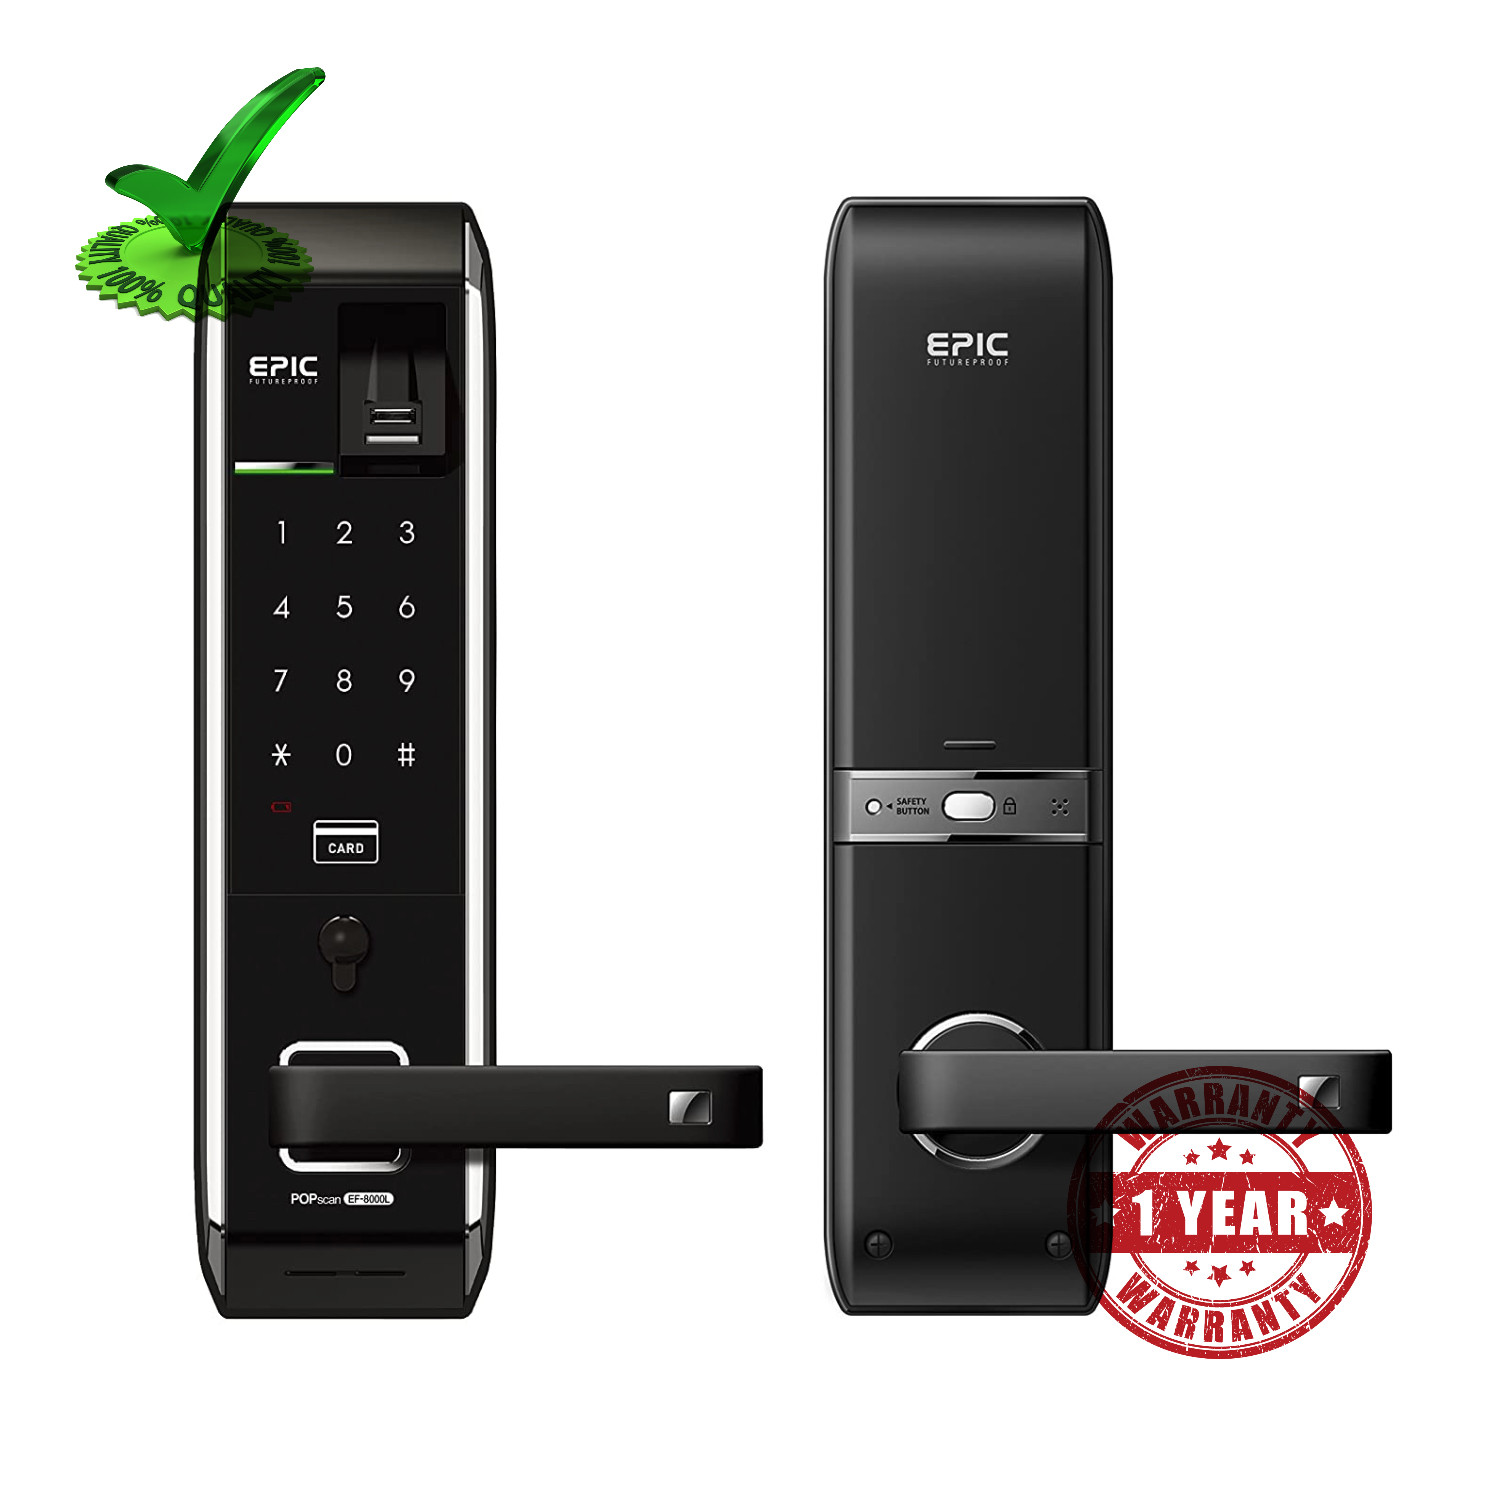 Epic EF 8000LR Digital Finger Print Door Lock